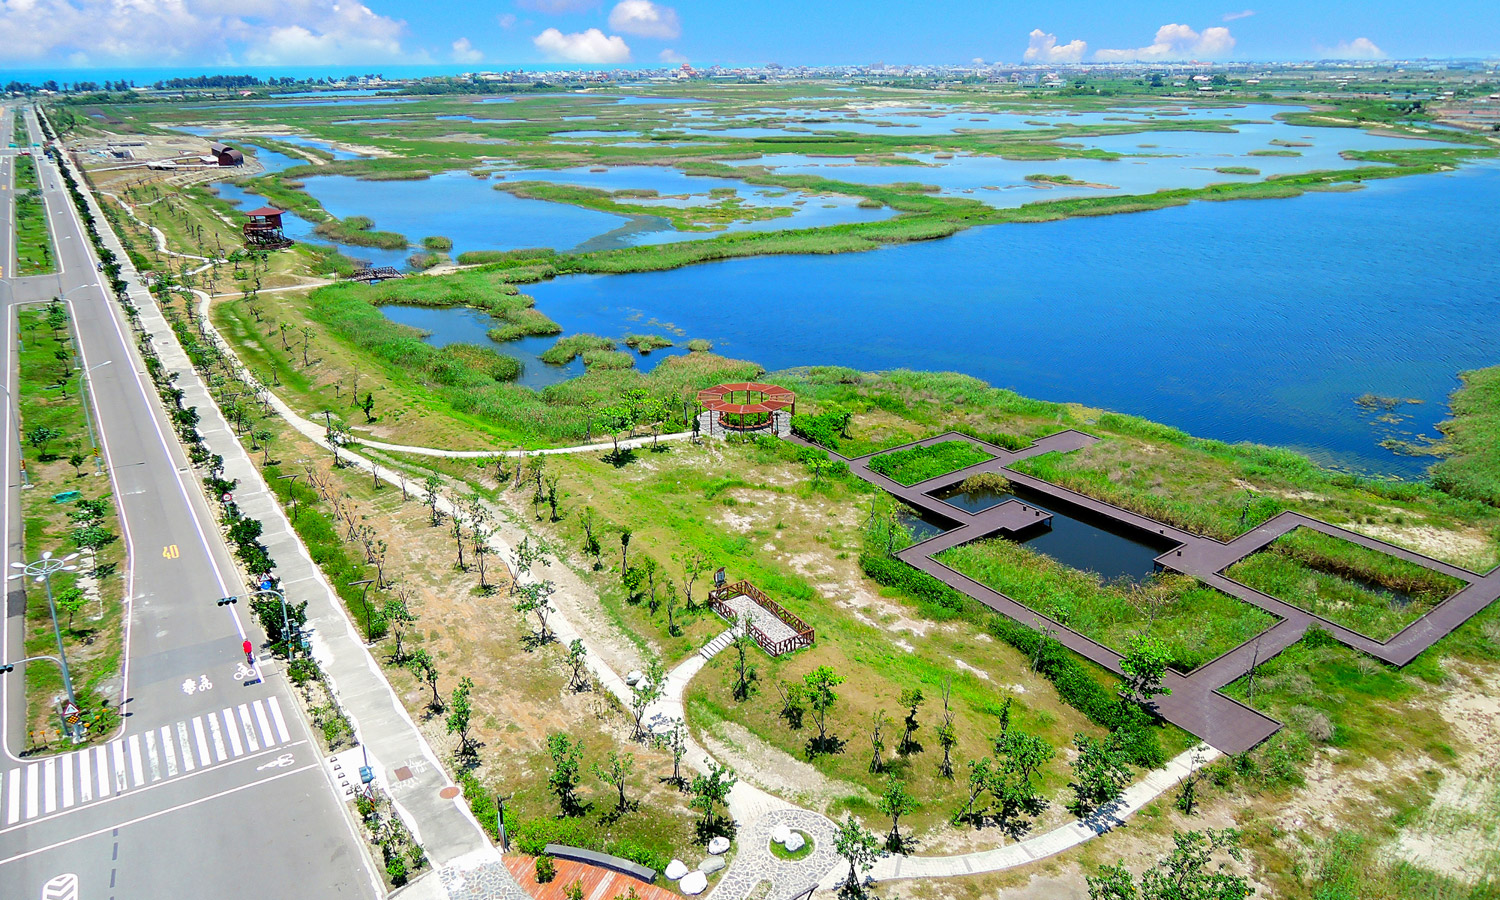 Chengcing Lake. (©Urban Development Bureau, Kaohsiung City Government, Taiwan)